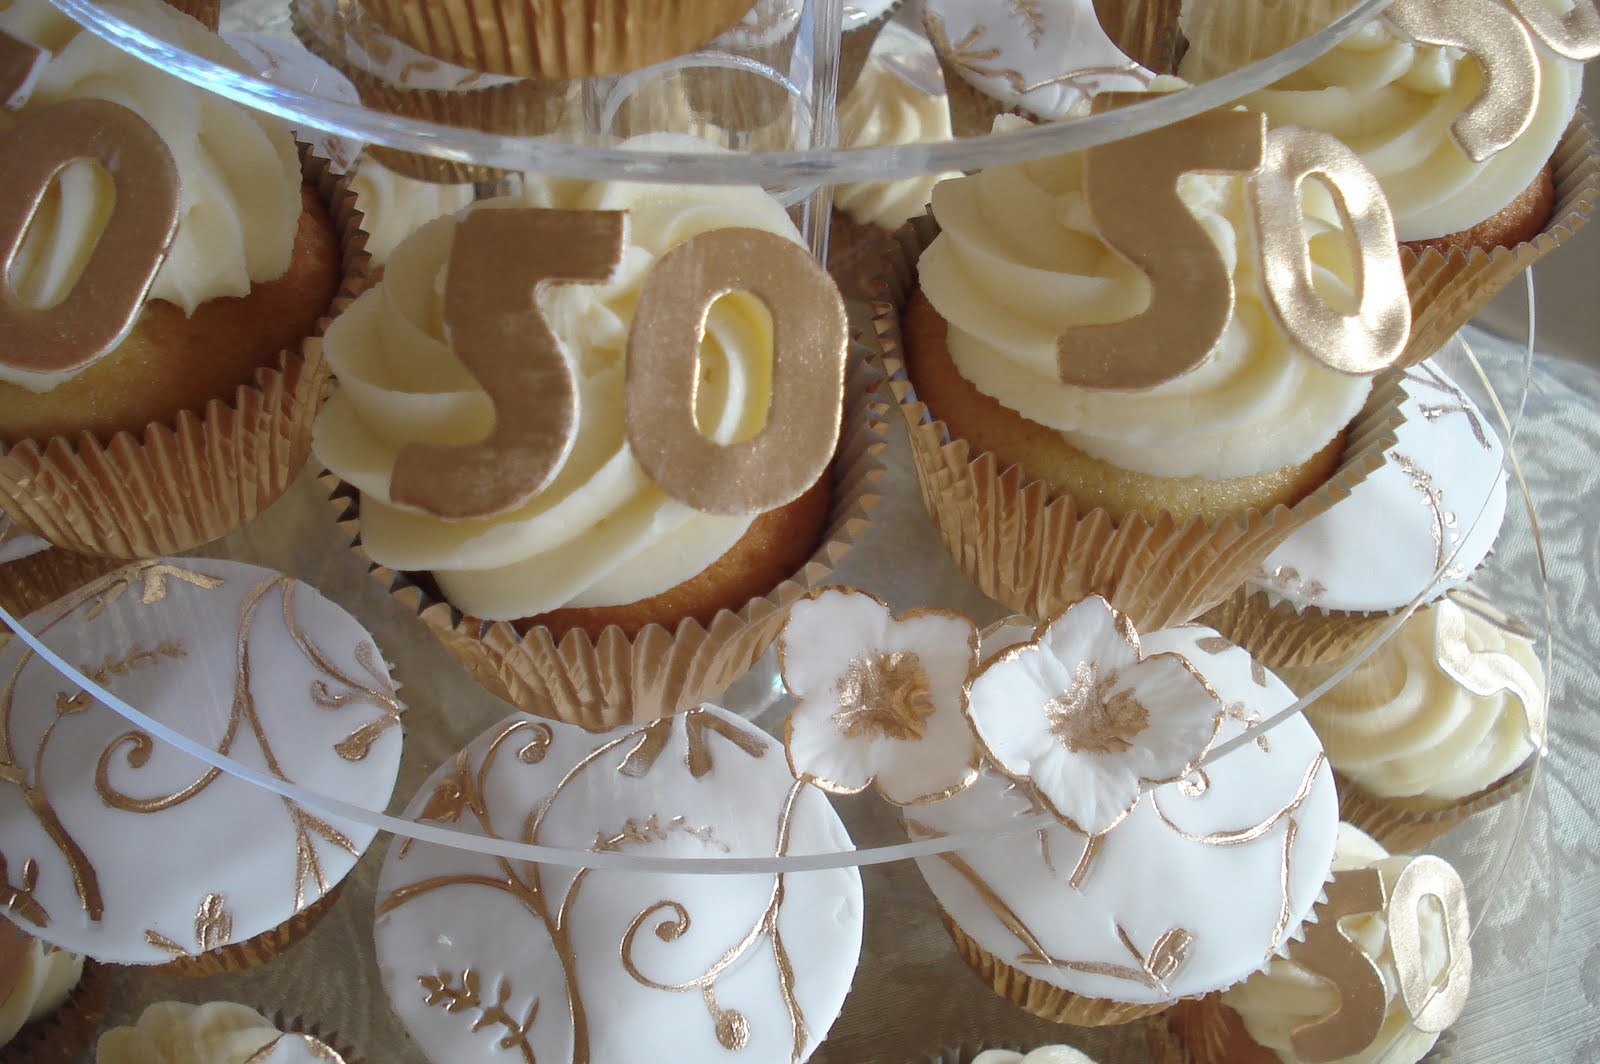 50th Wedding Anniversary Cupcake Idea